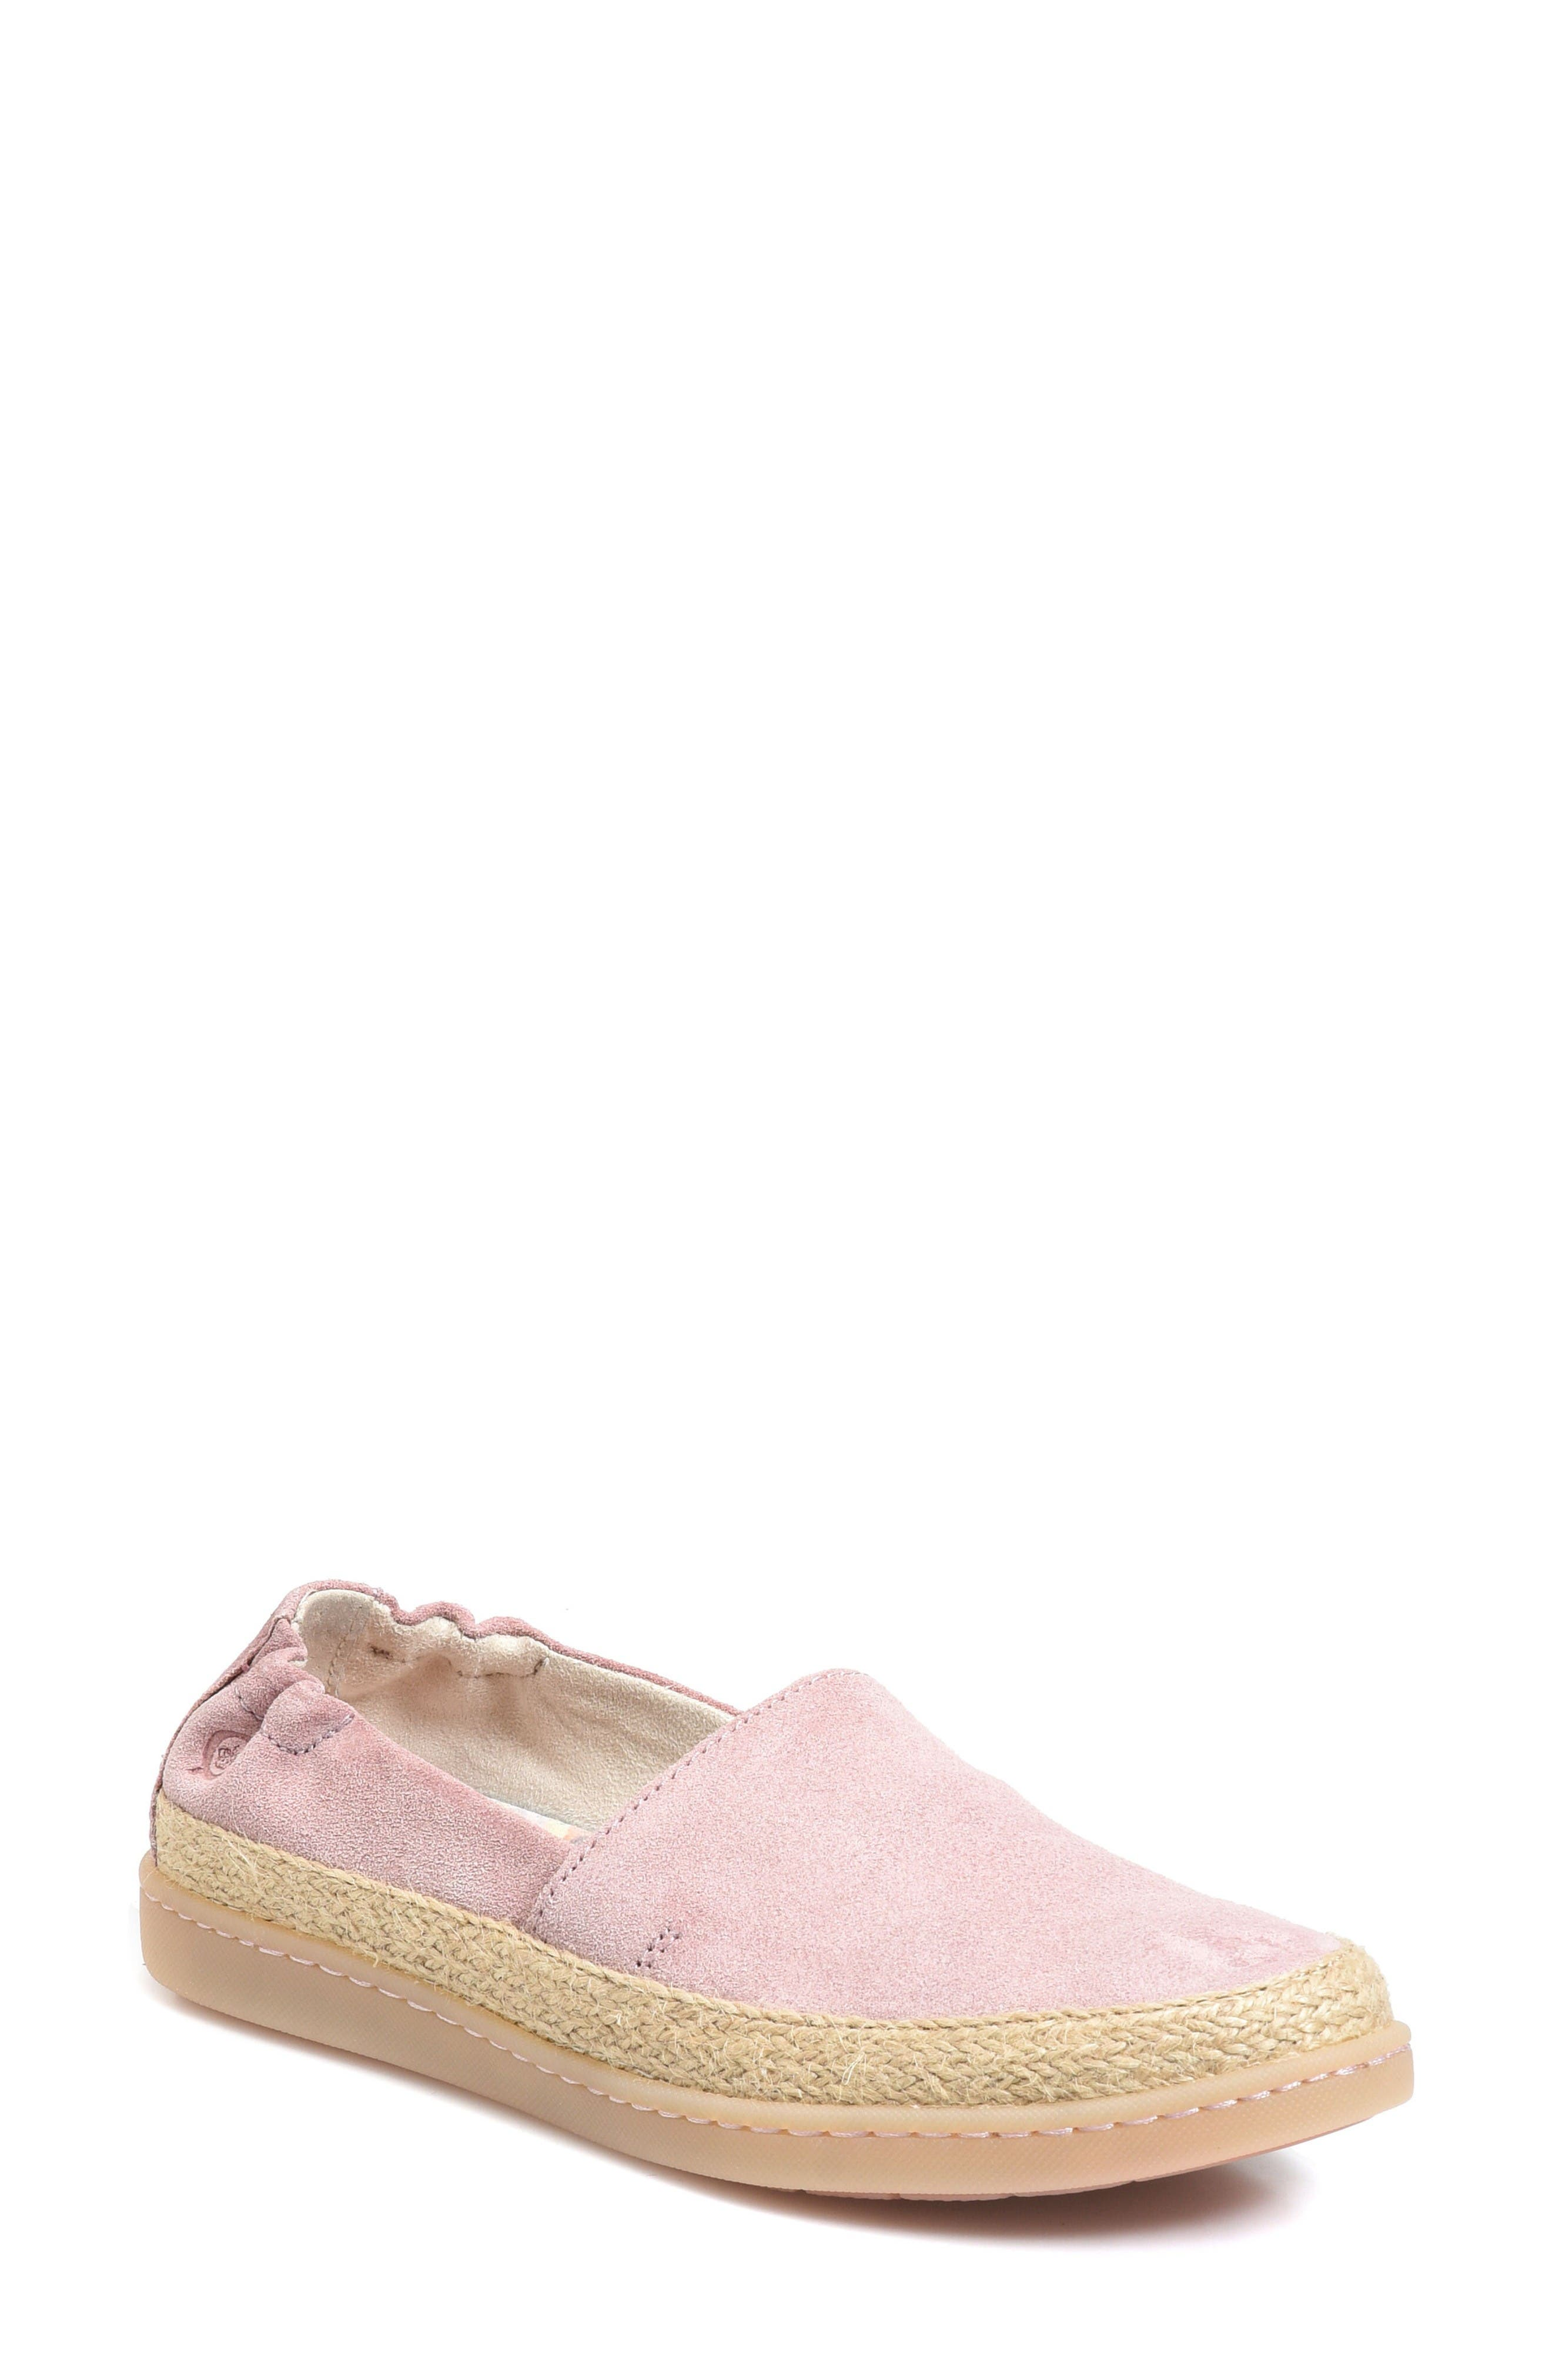 Castries Flat,                         Main,                         color, Pink Suede